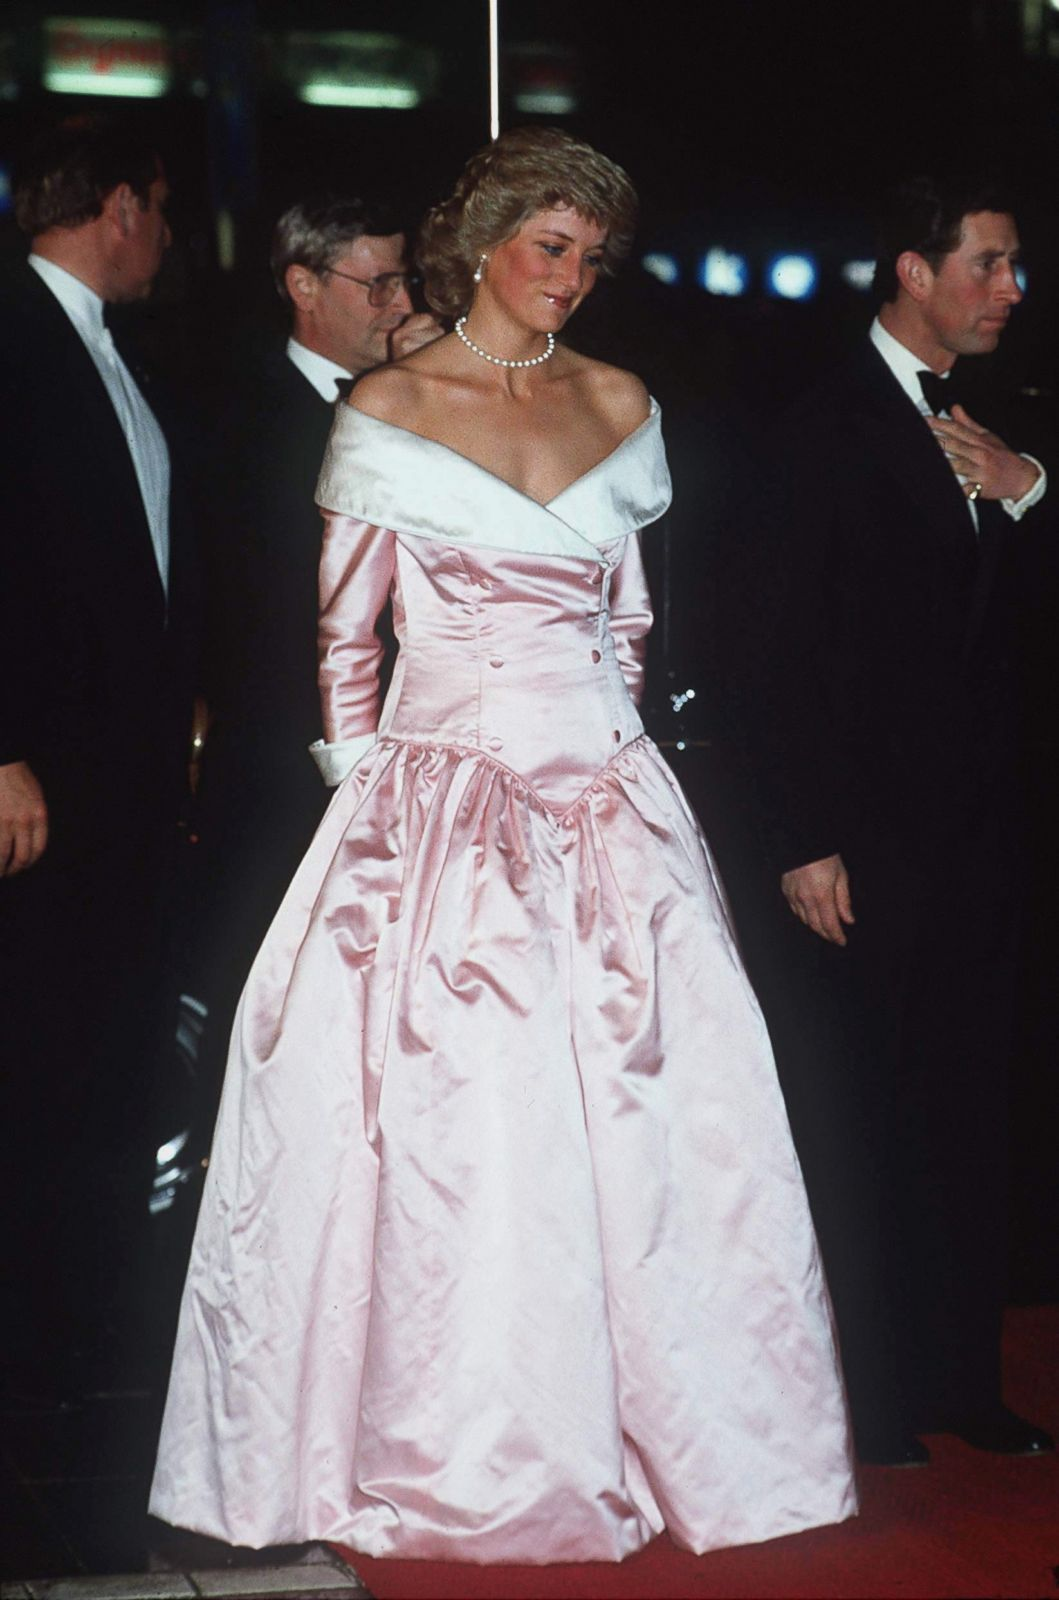 princess diana wedding dress price » Wedding Dresses Designs, Ideas ...